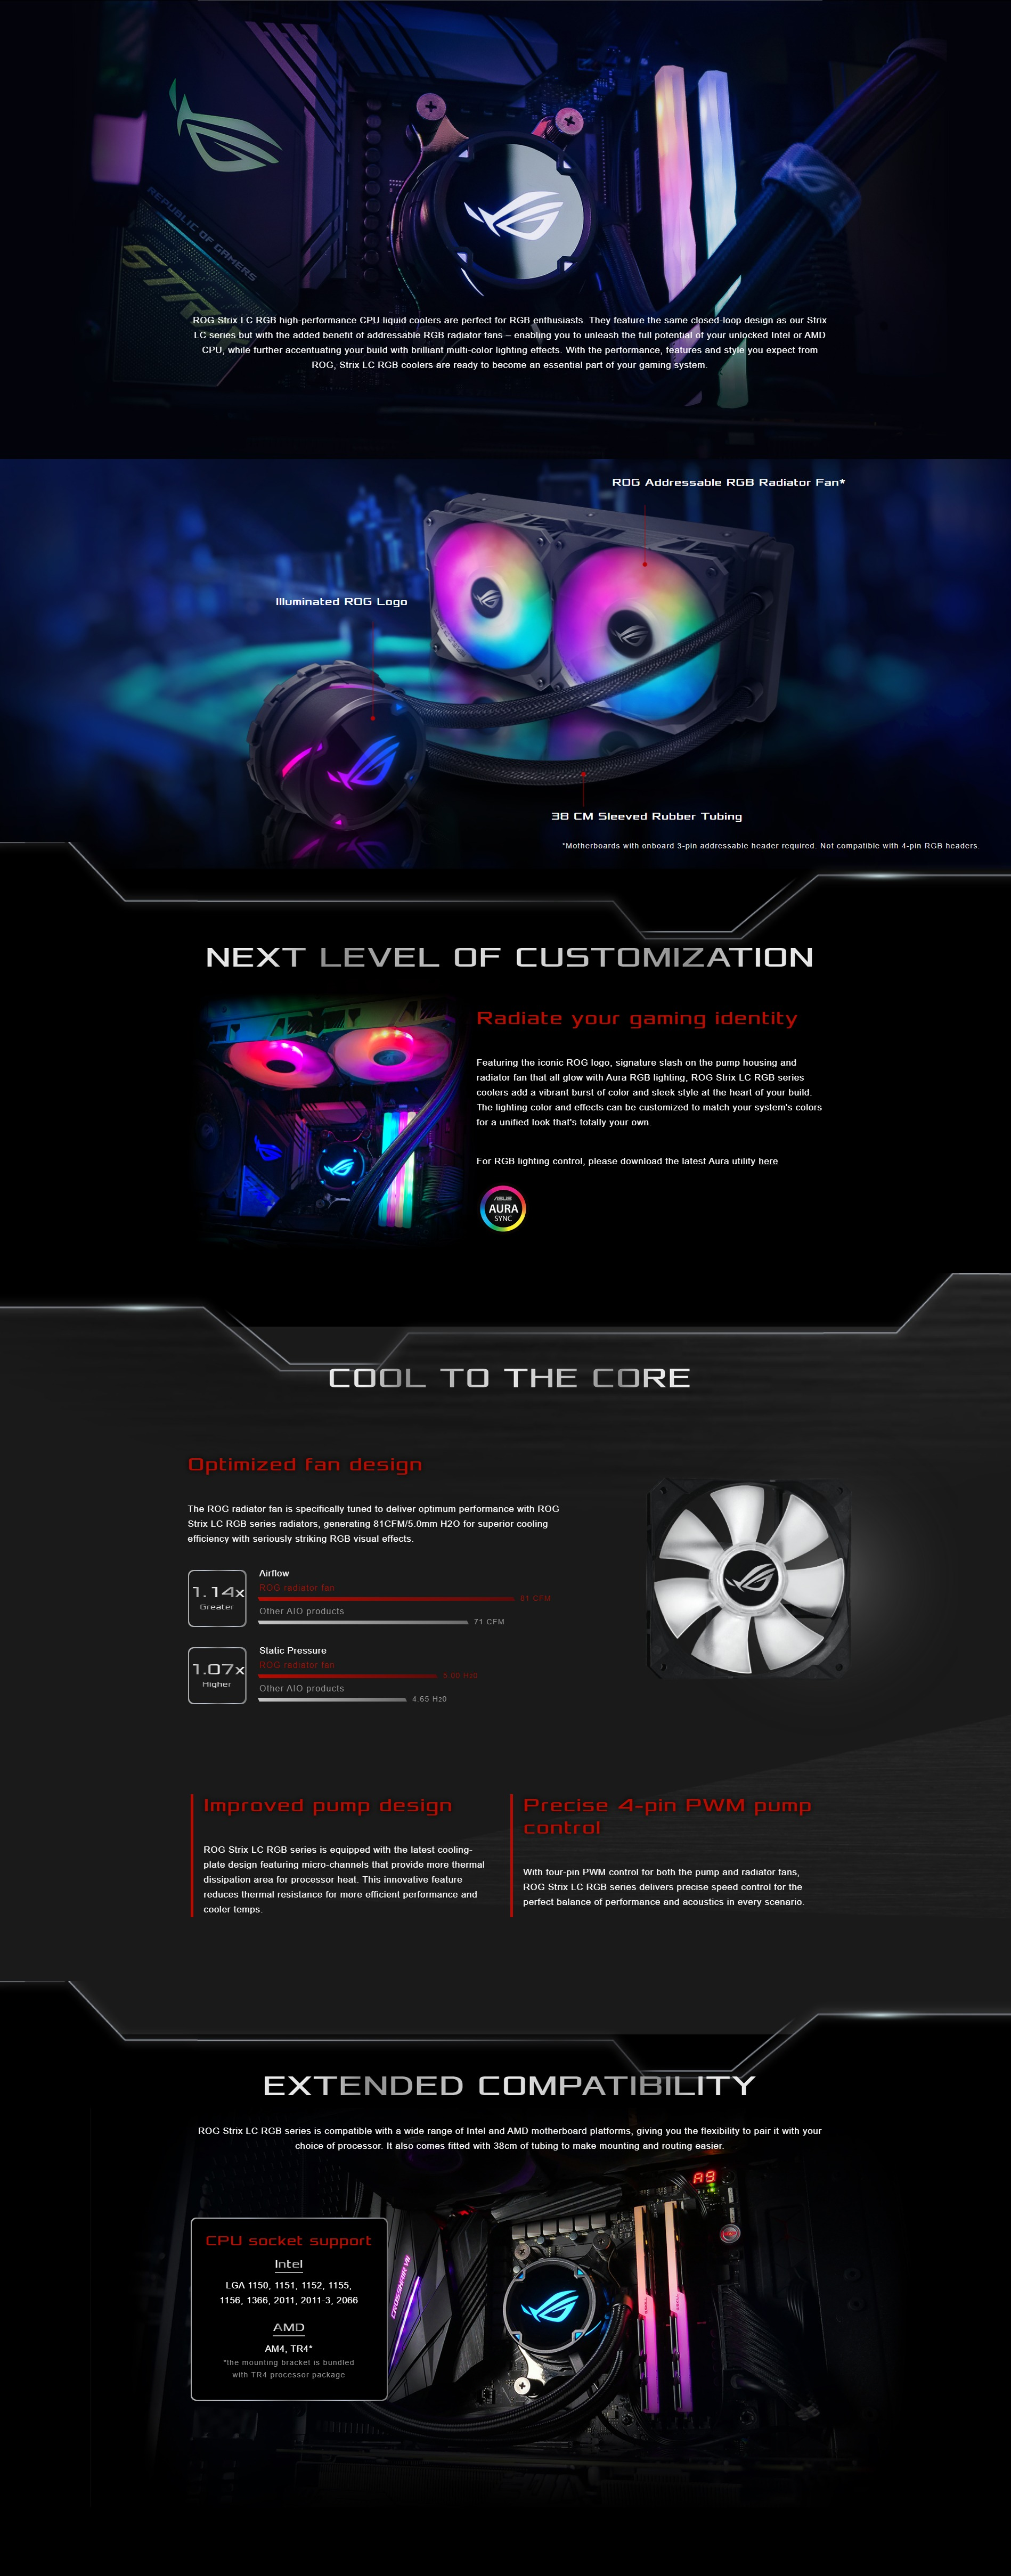 A large marketing image providing additional information about the product ASUS ROG Strix LC 240mm RGB AIO Liquid Cooler - Additional alt info not provided